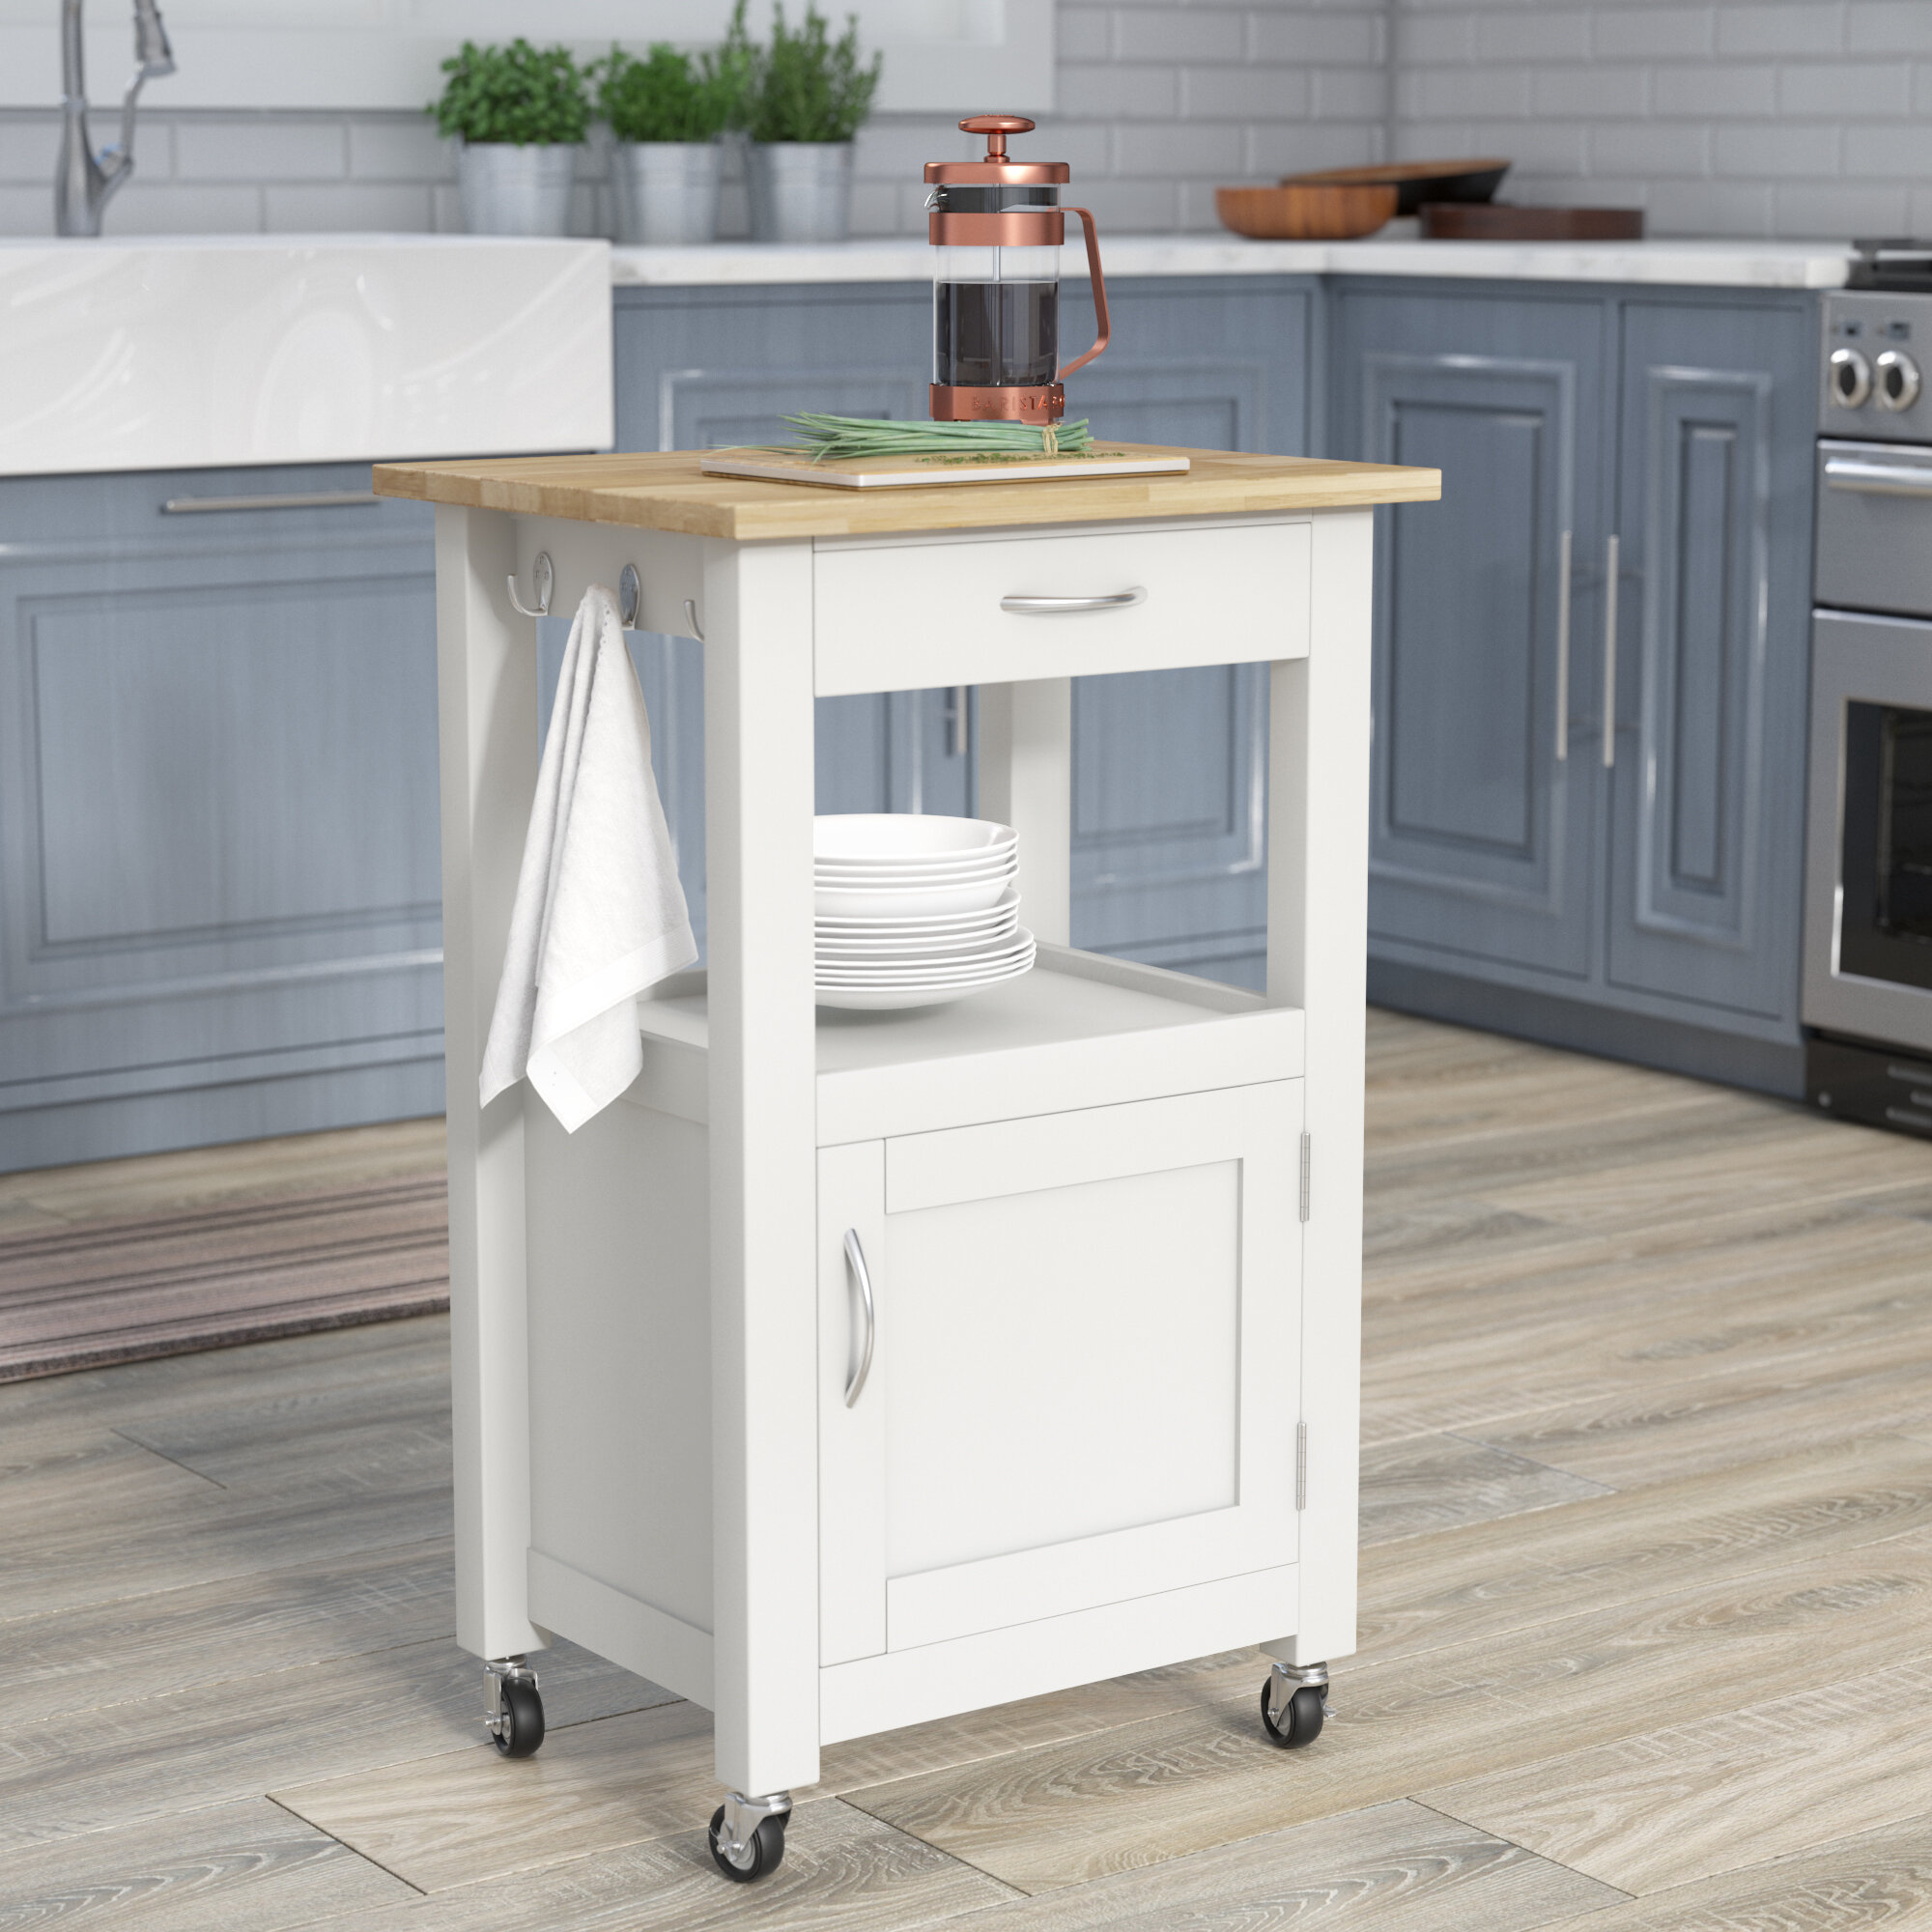 rolling carts island cart simple less living kitchen for oregon garden home drawer subcat overstock